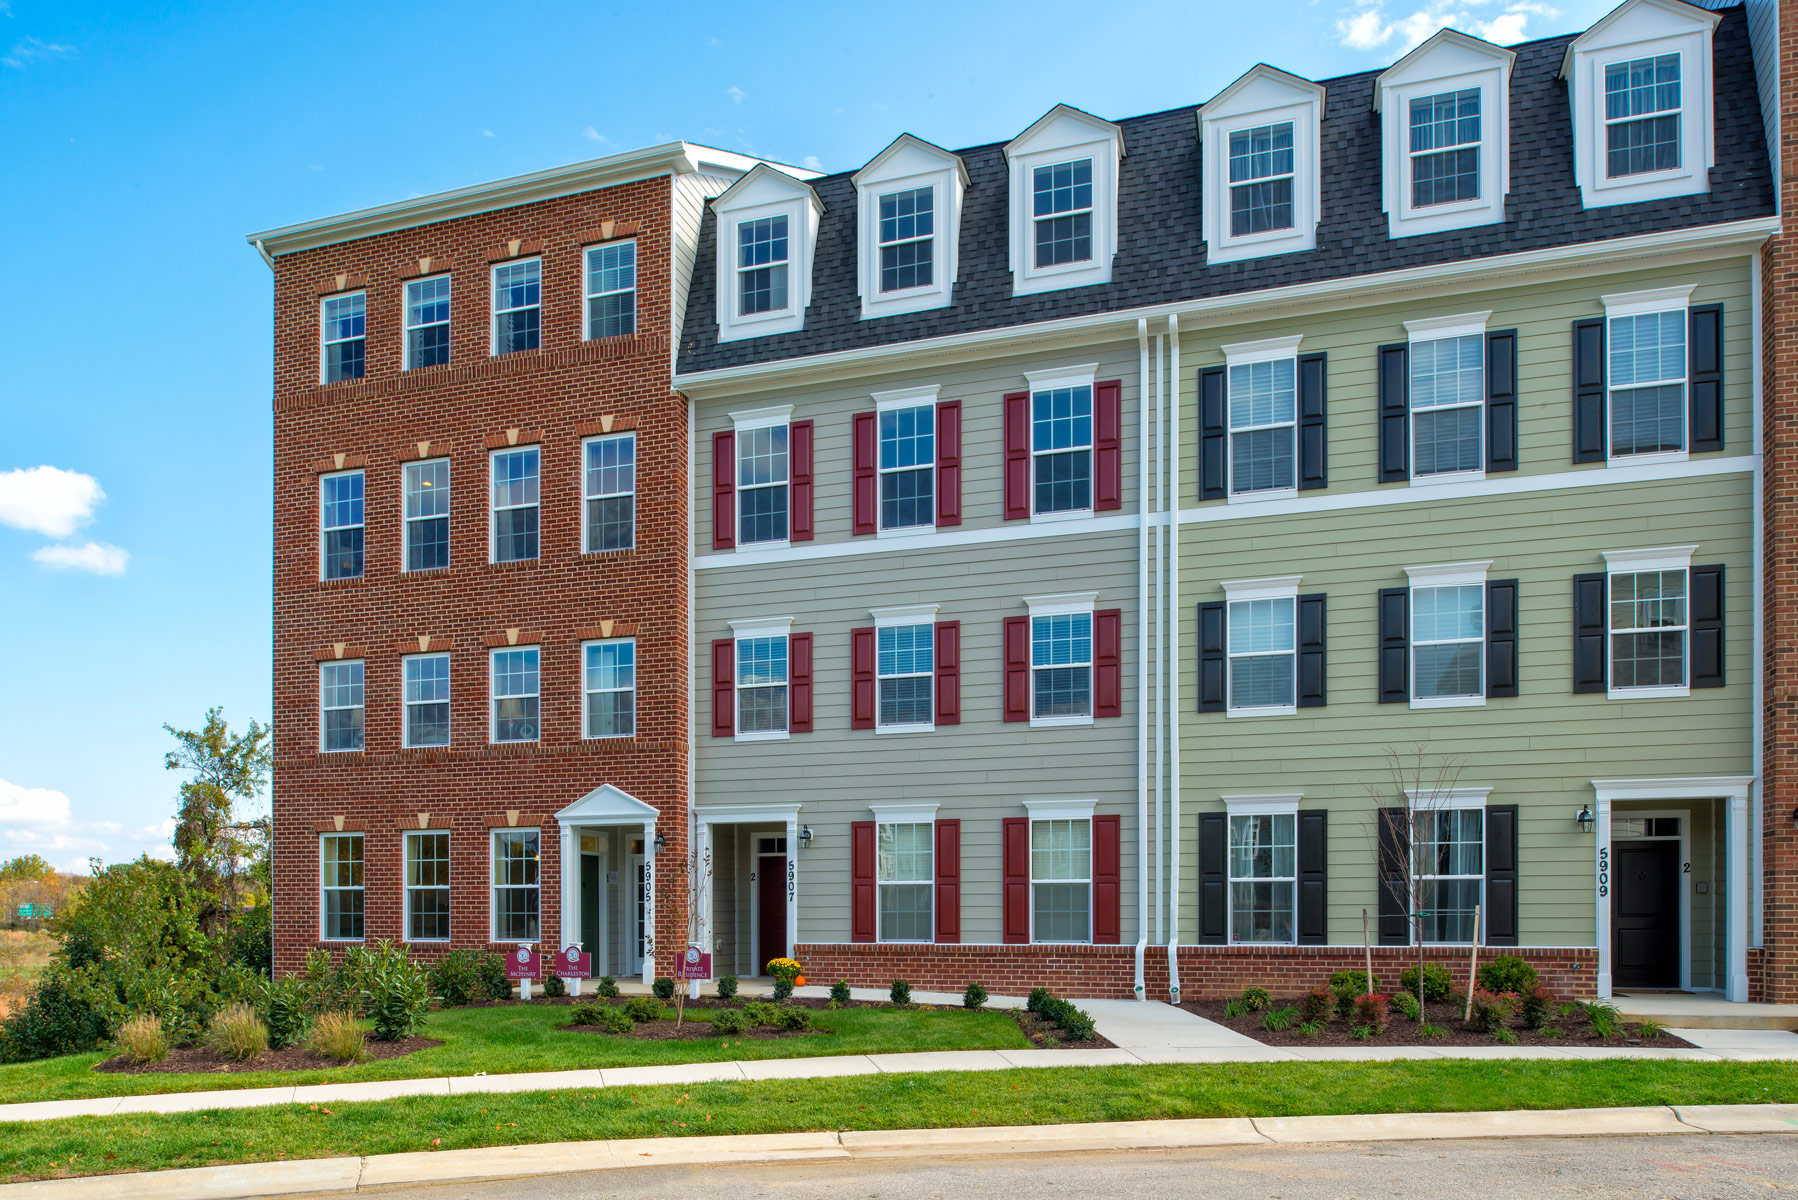 Single Family for Sale at Shipley's Grant-The Mchenry 5780 Richards Valley Road Ellicott City, Maryland 21043 United States